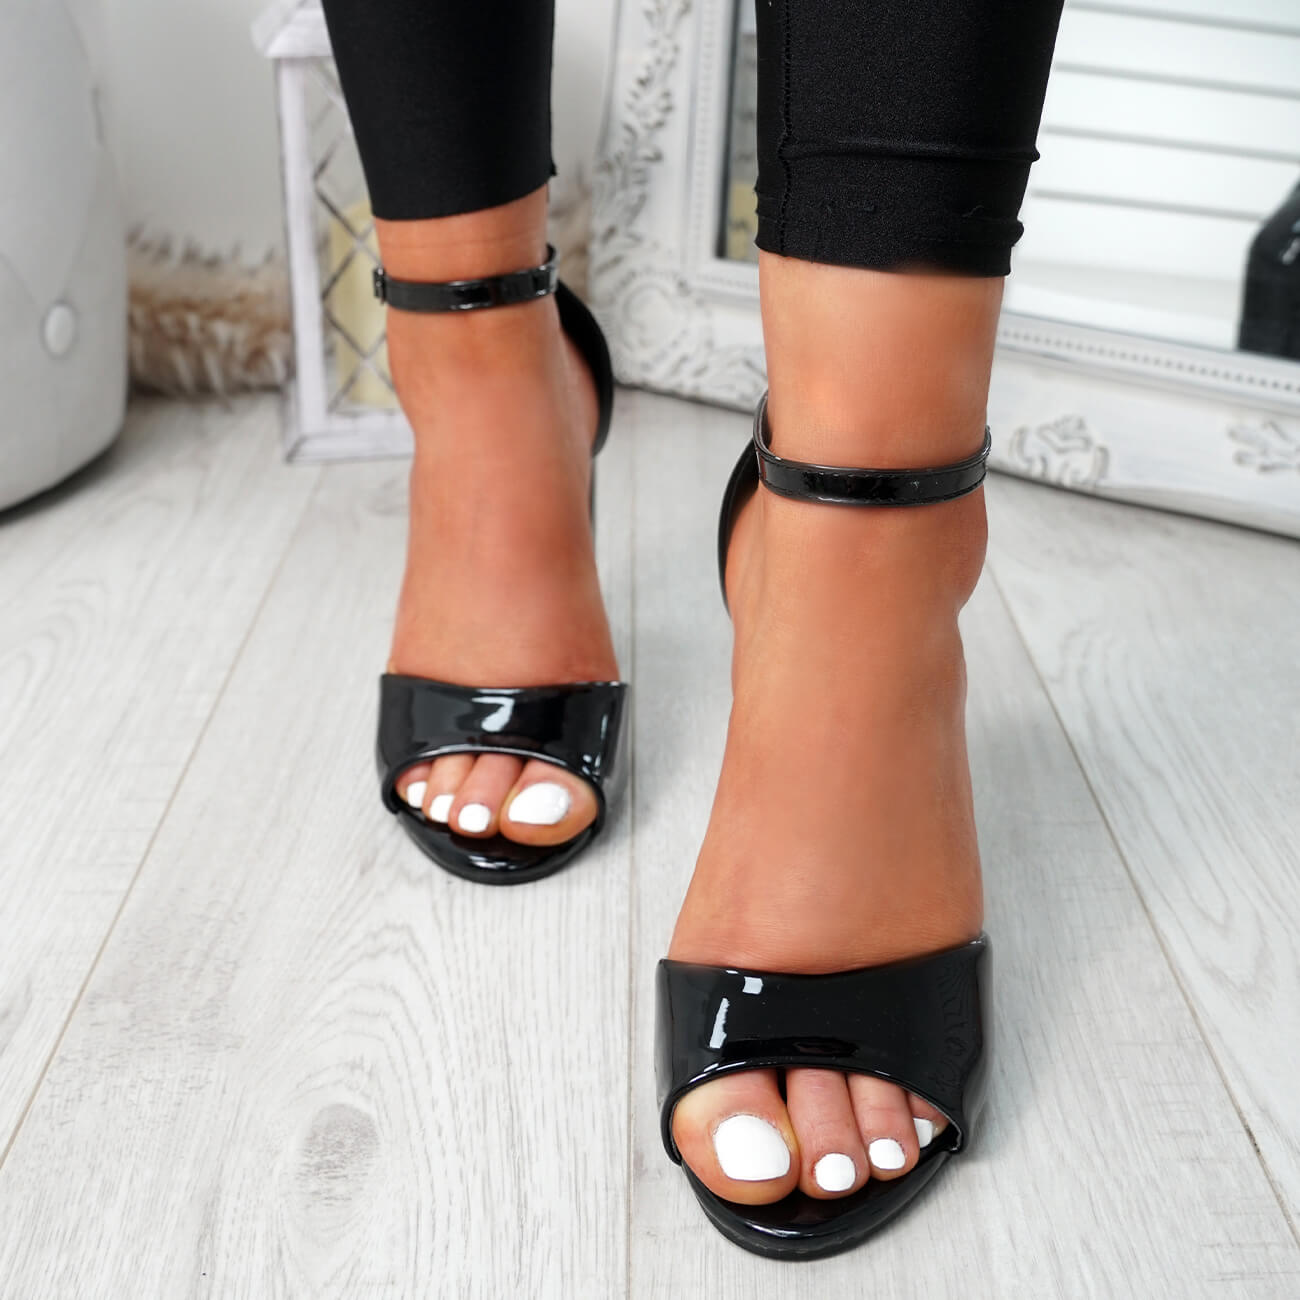 WOMENS-LADIES-ANKLE-STRAP-HIGH-BLOCK-HEEL-SANDALS-PEEP-TOE-OFFICE-CASUAL-SHOES thumbnail 12